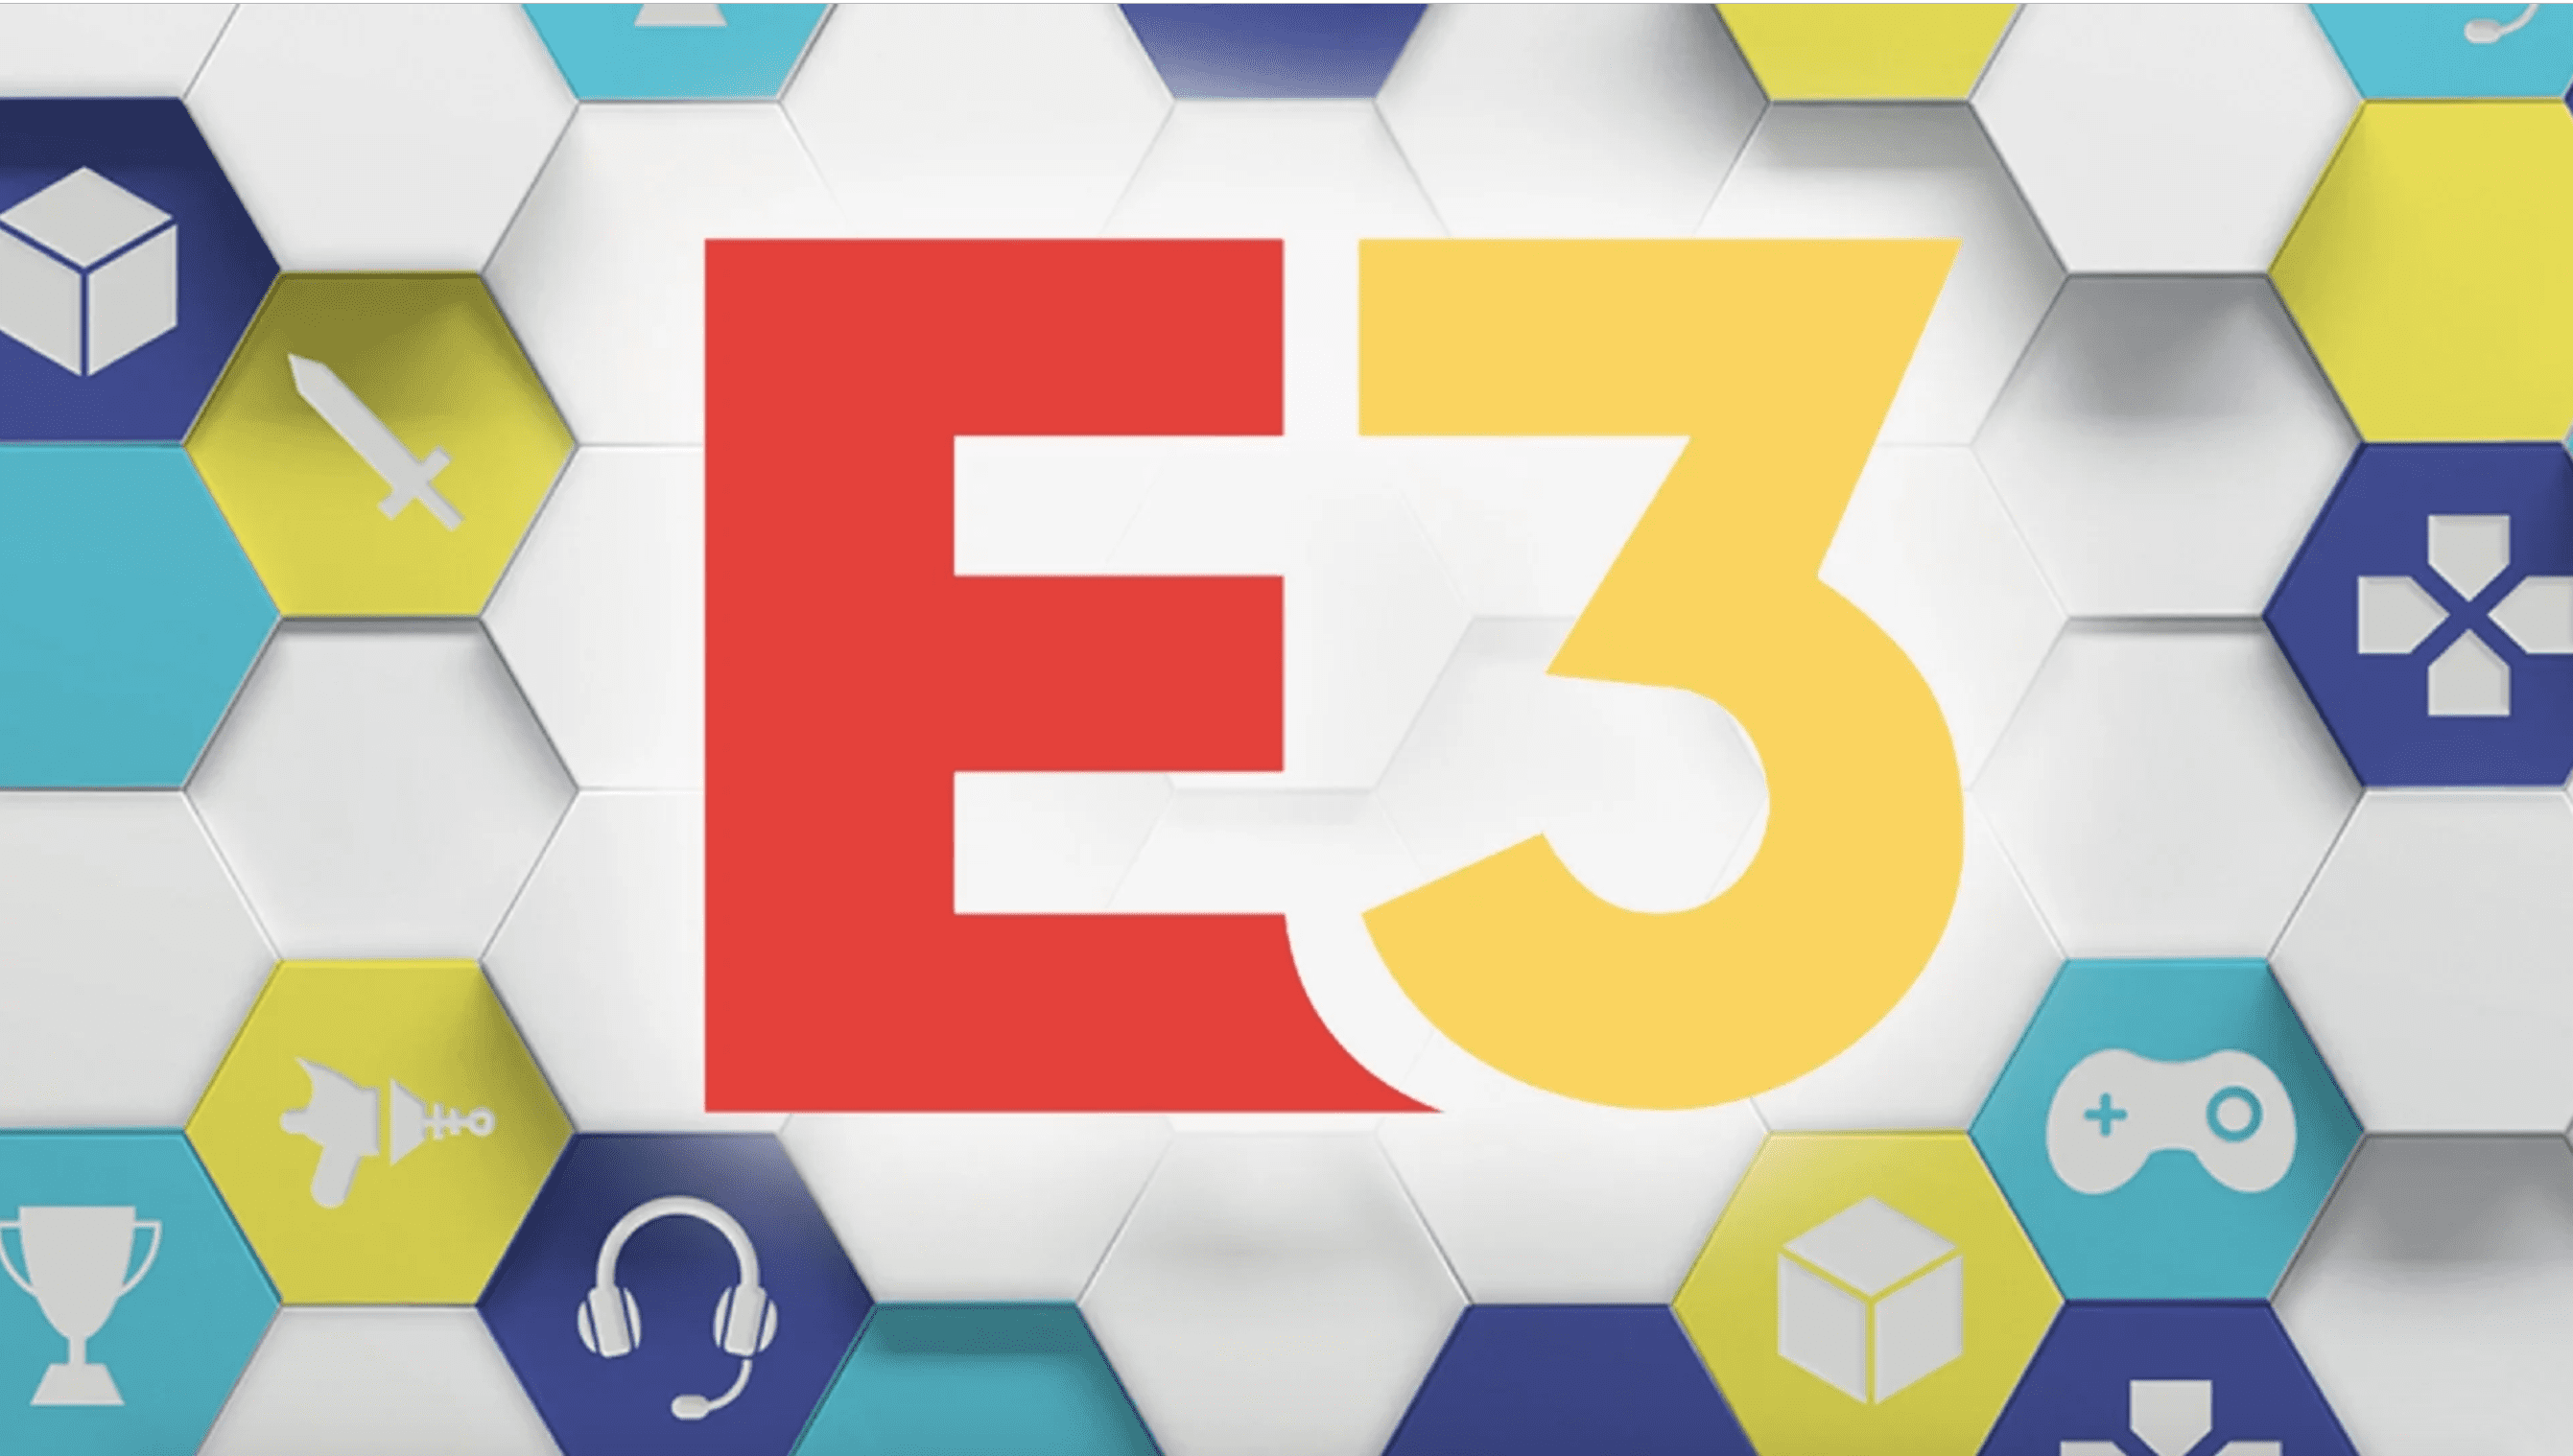 Rumor: E3 2020 Has Allegedly Been Canceled